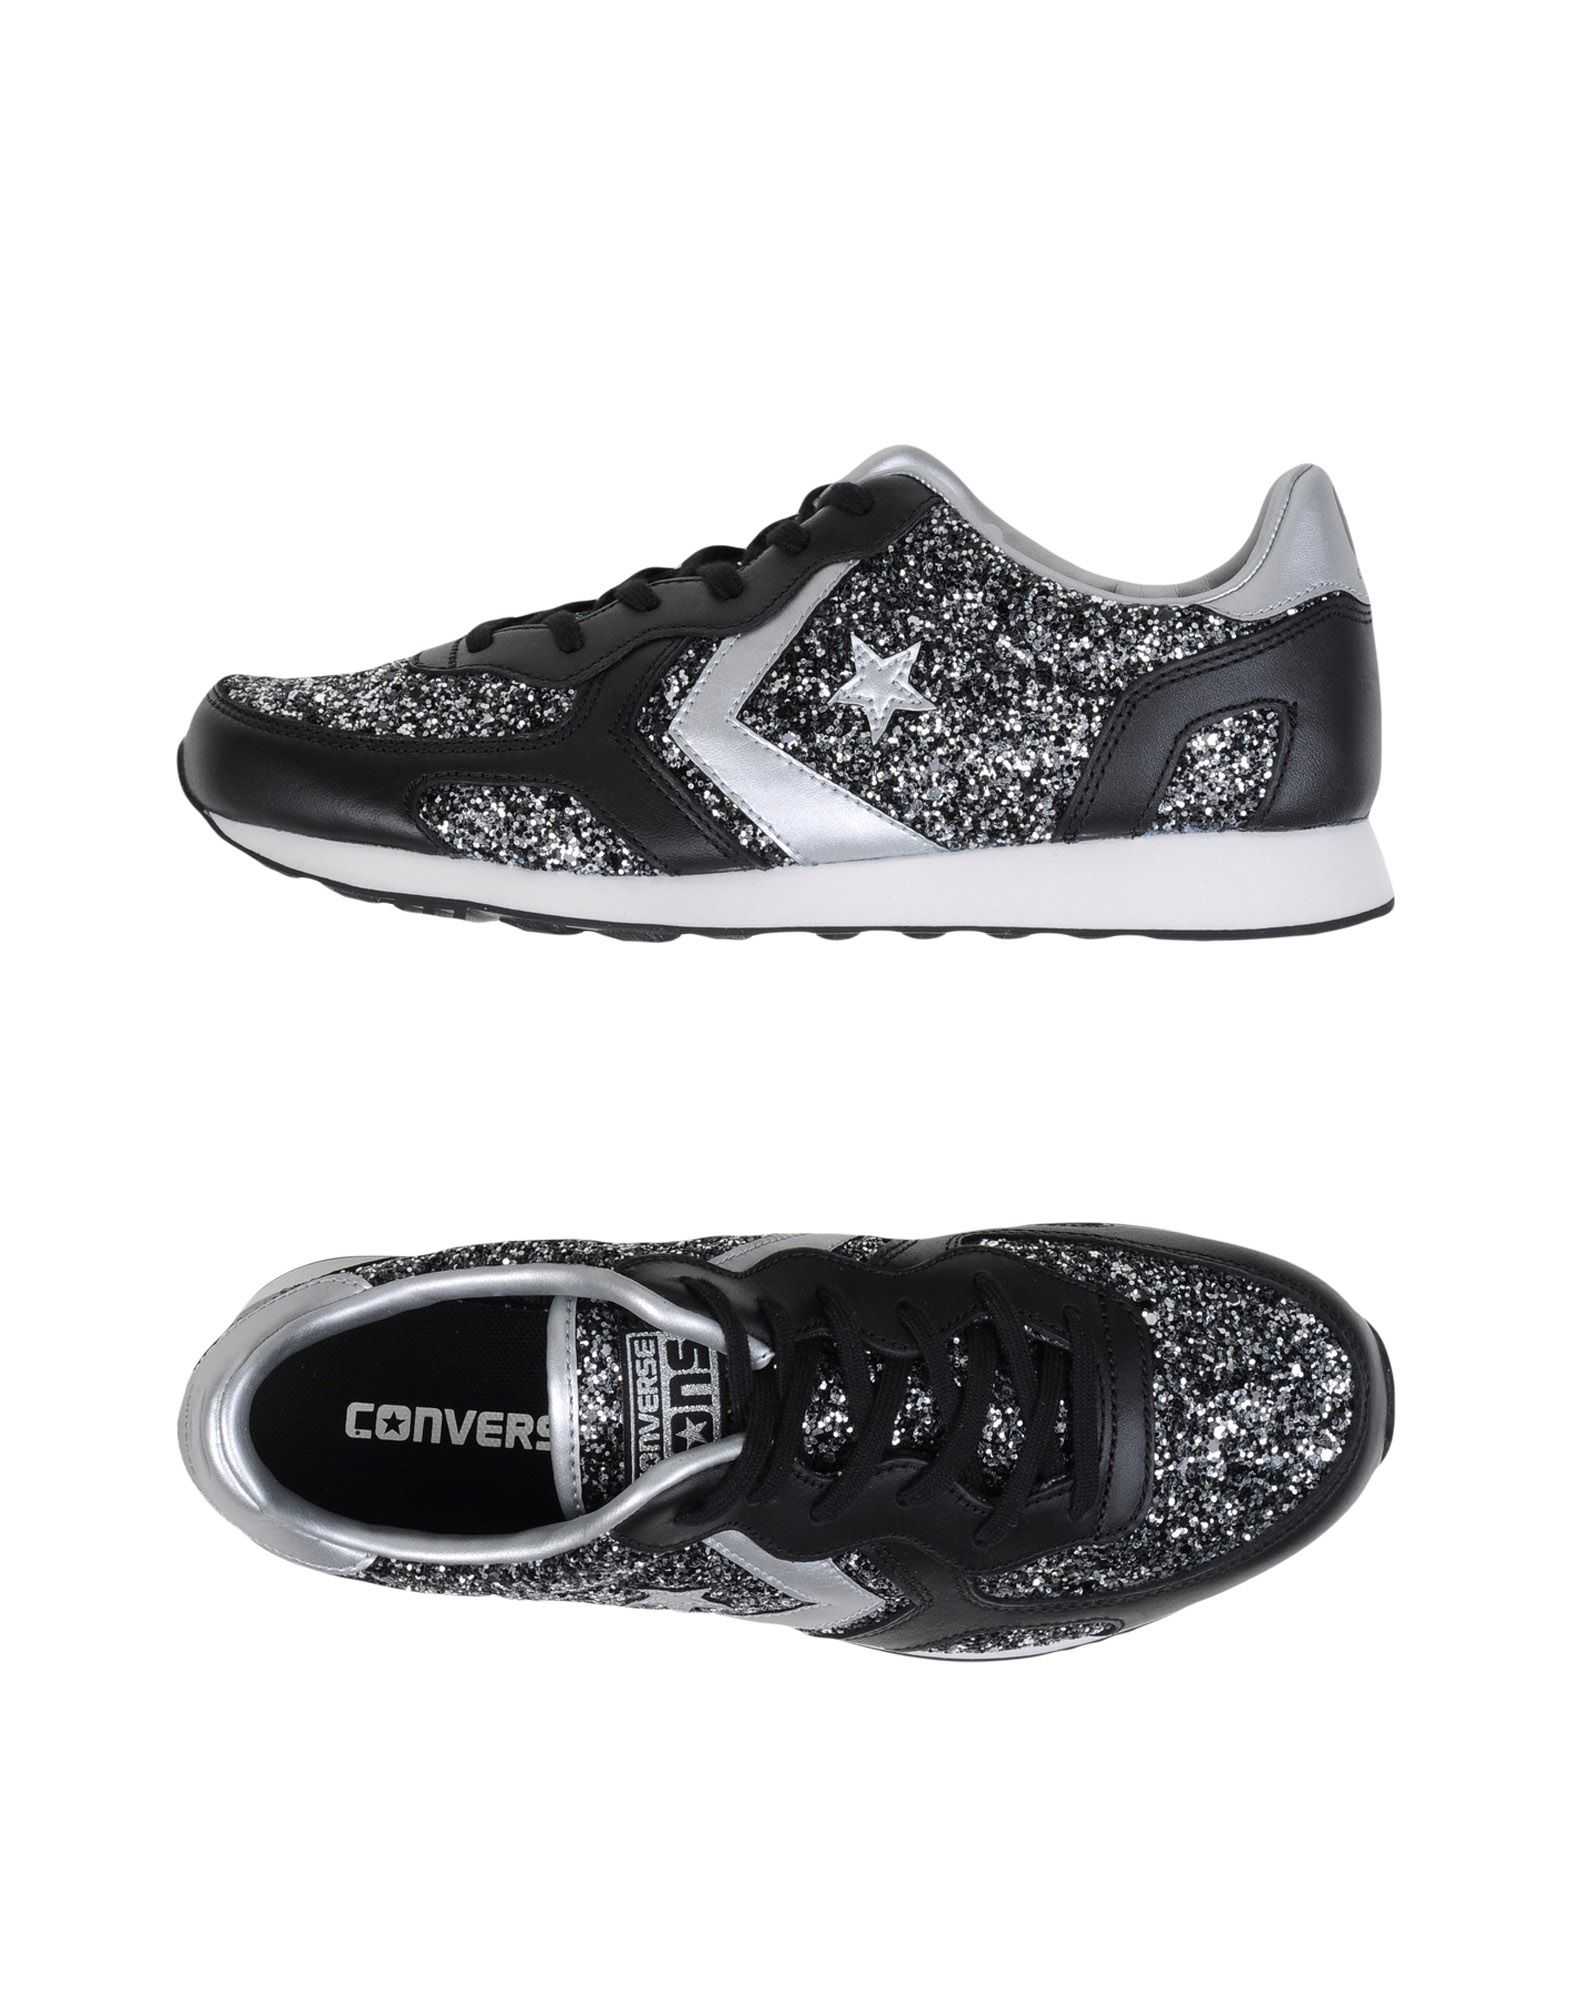 Sneakers Converse Cons Auckland Racer Ox Glitter/Leat - Femme - Sneakers Converse Cons sur